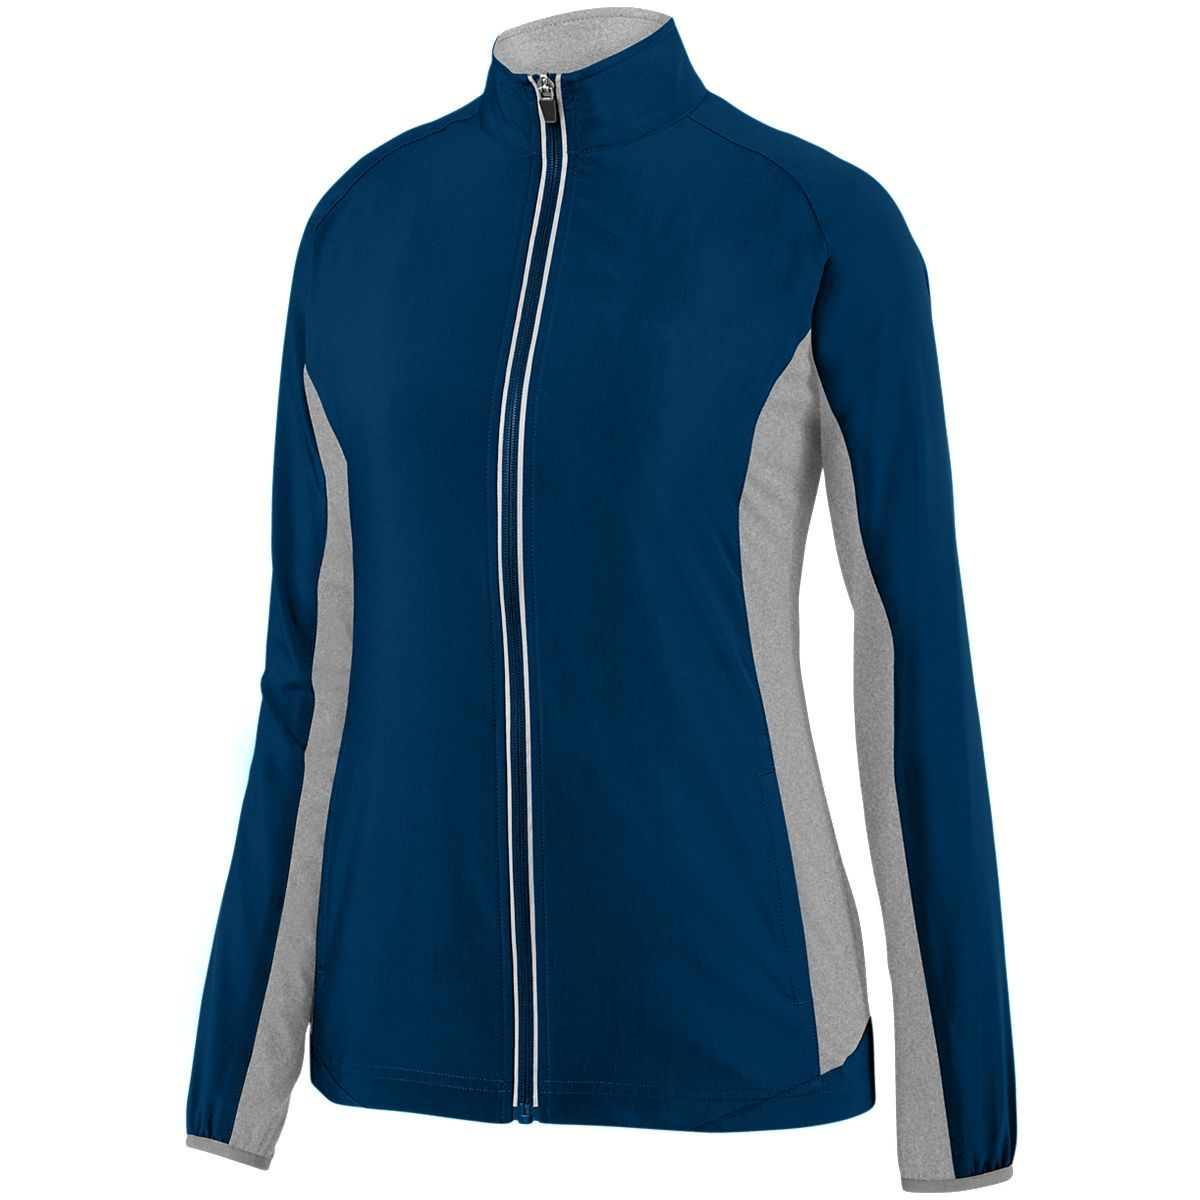 Ladies Preeminent Jacket - NAVY/GRAPHITE HEATHER